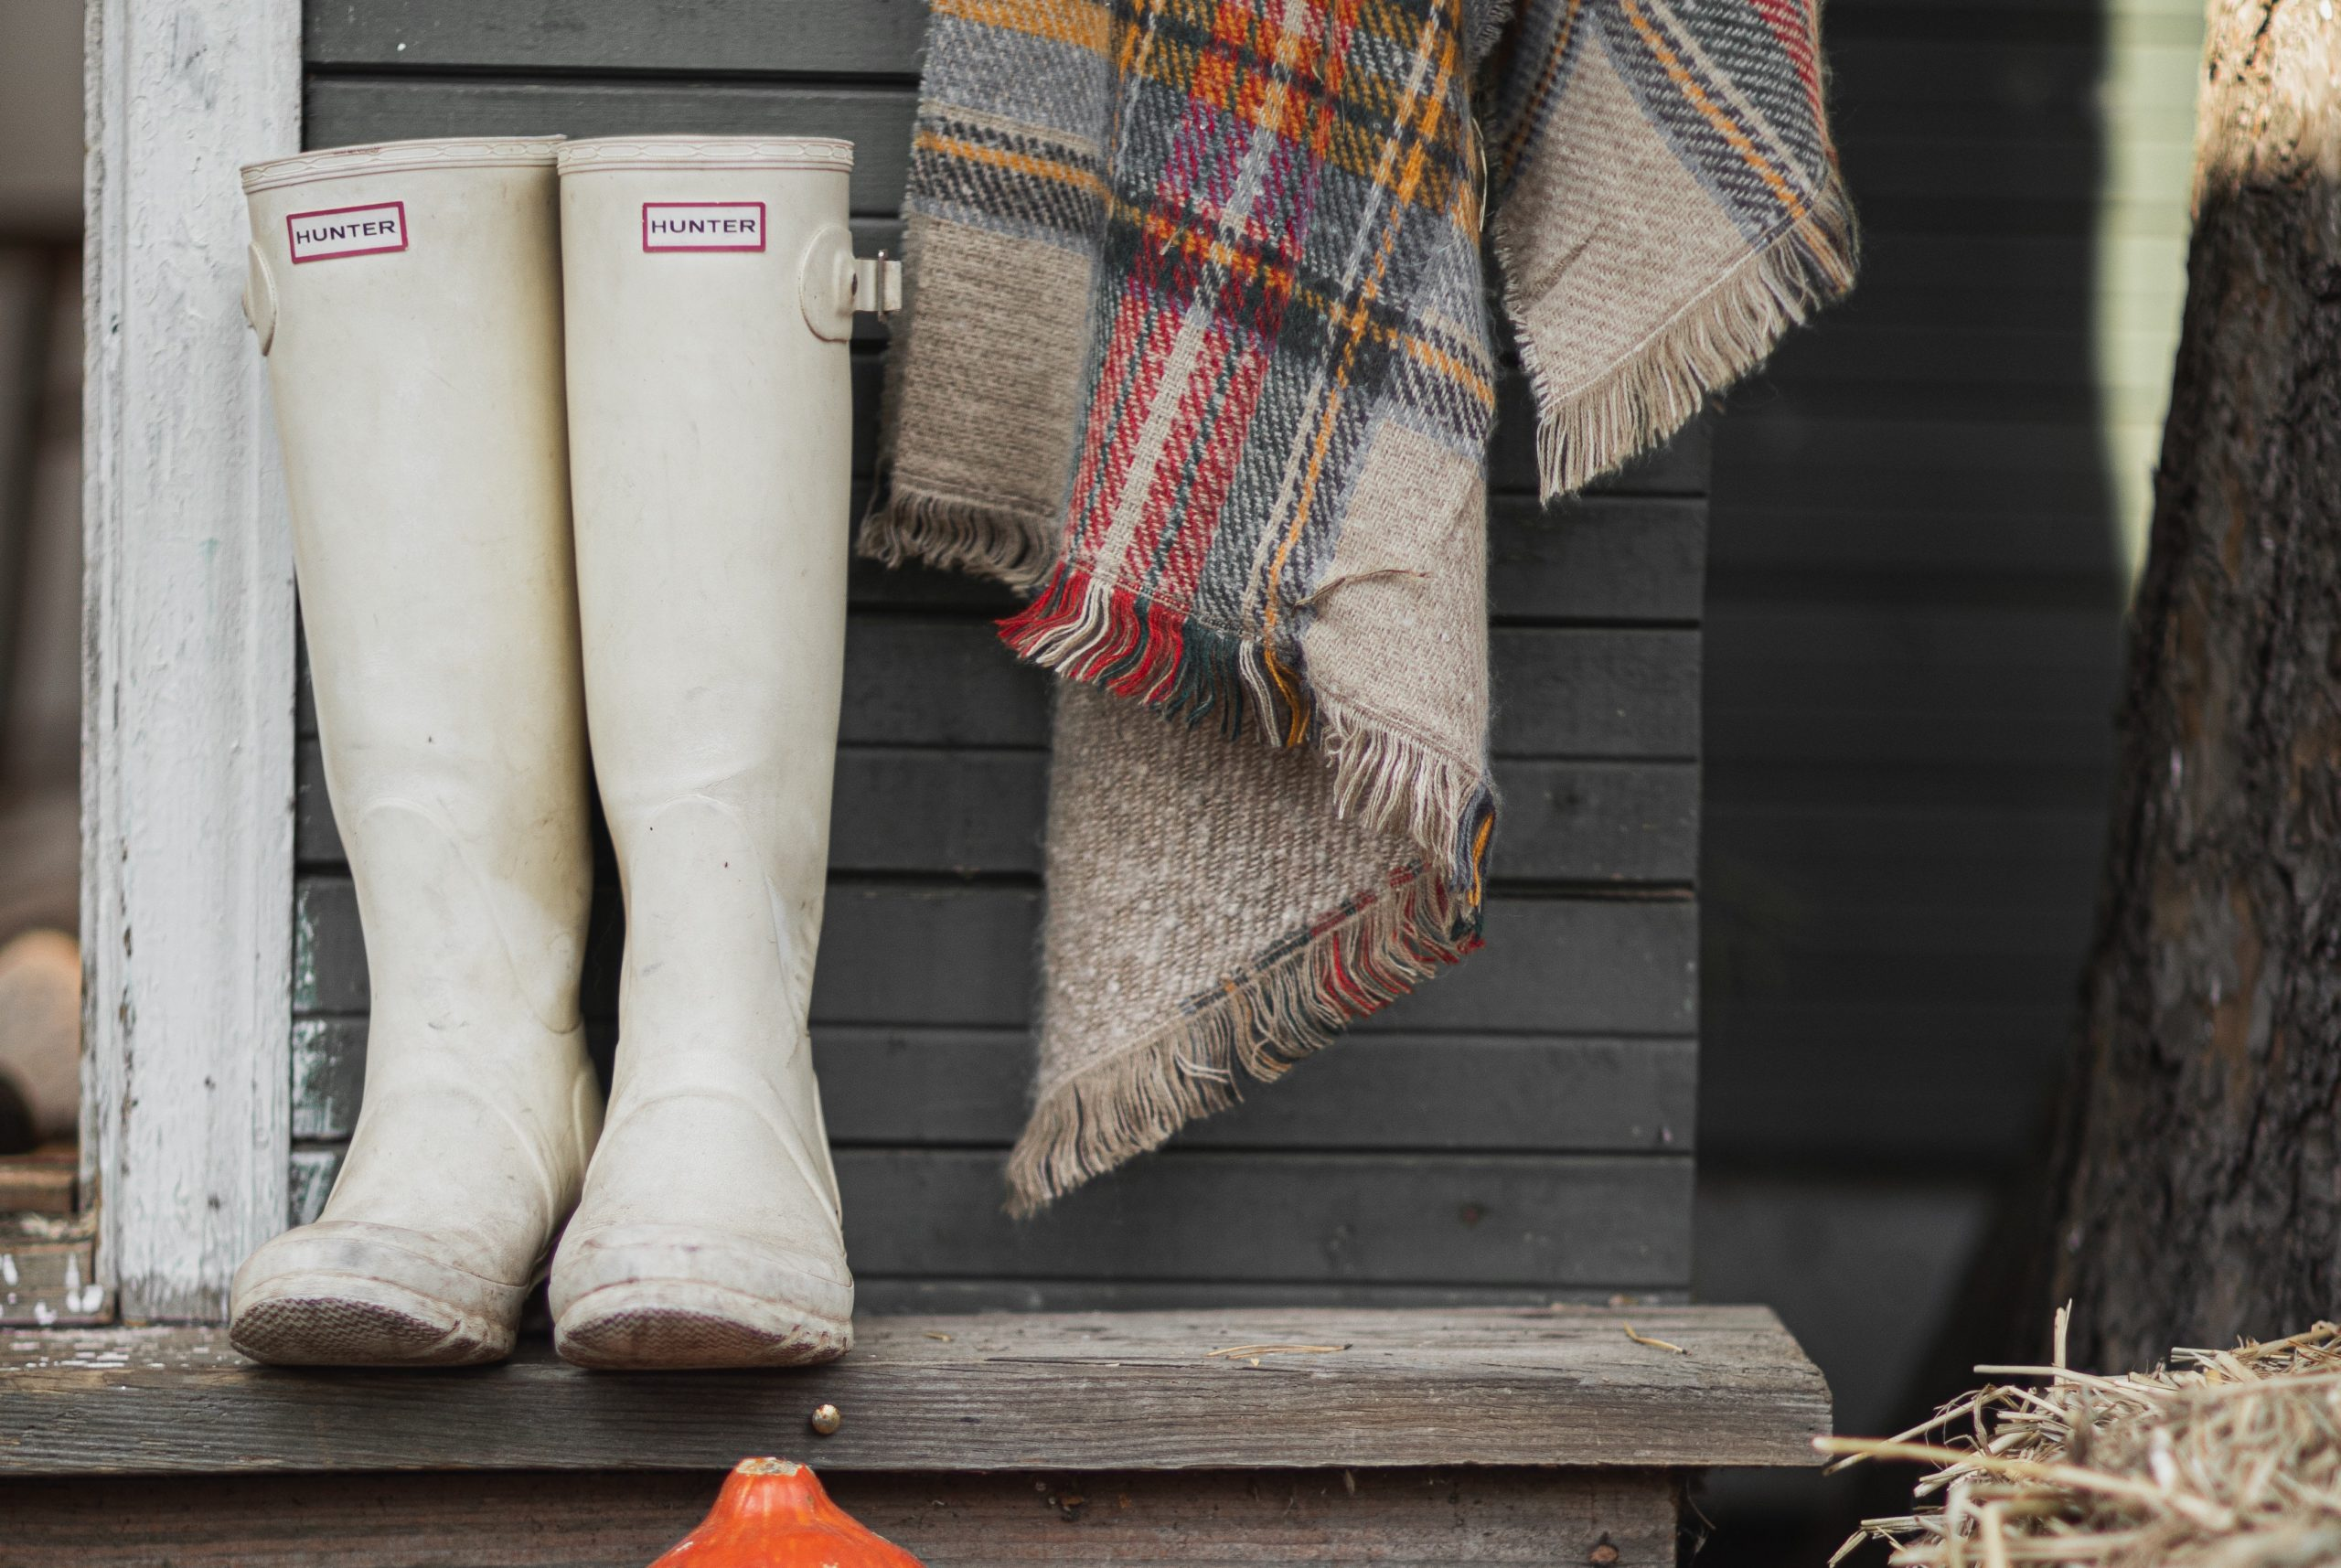 luxury home ideas for the fall season lived-in look boots by door